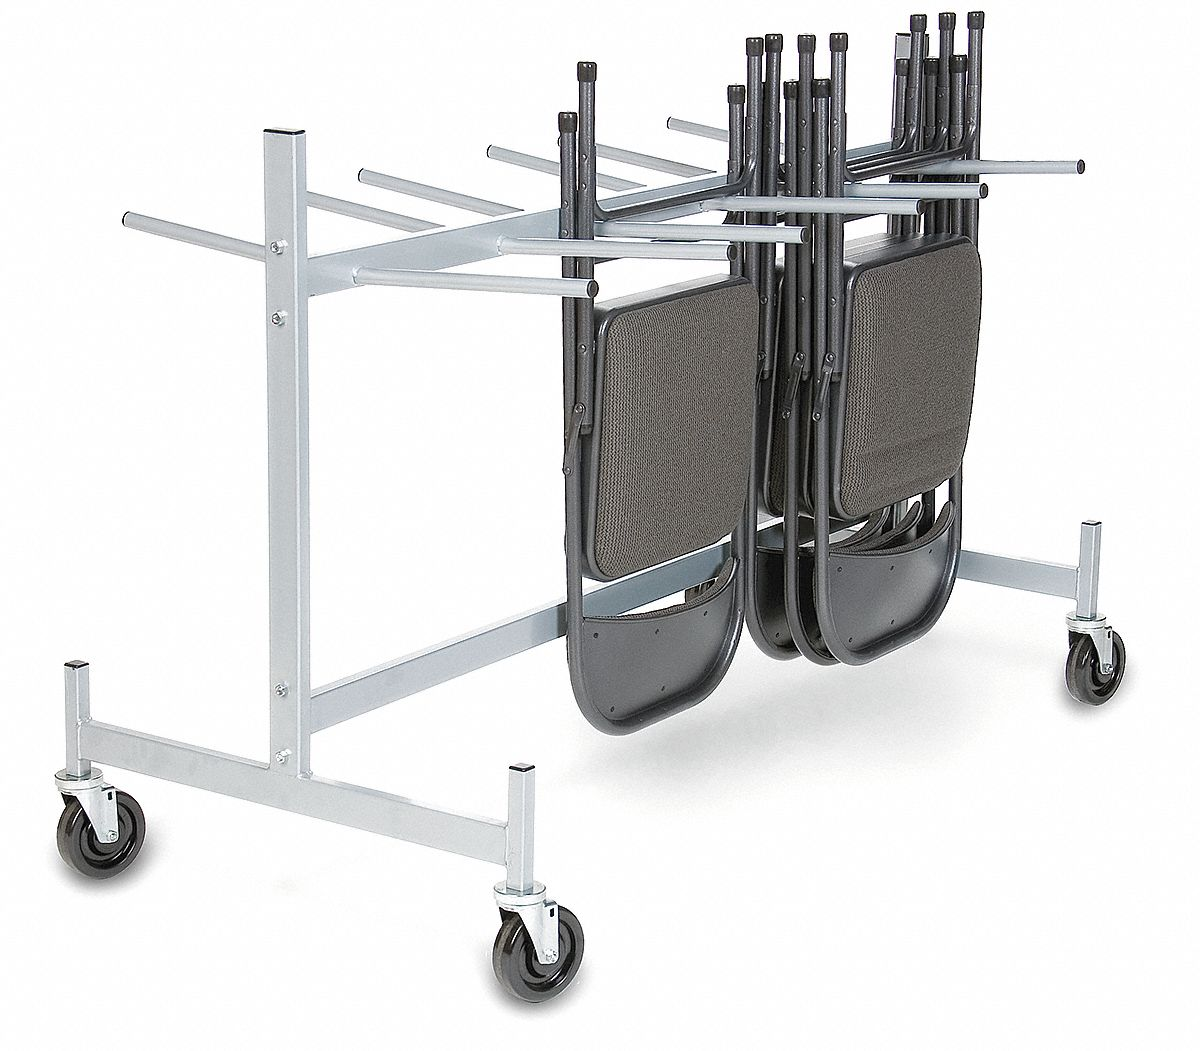 Hanging Rack for Folding Chairs,  400 lb Load Capacity,  For Max. Number of Chairs 36